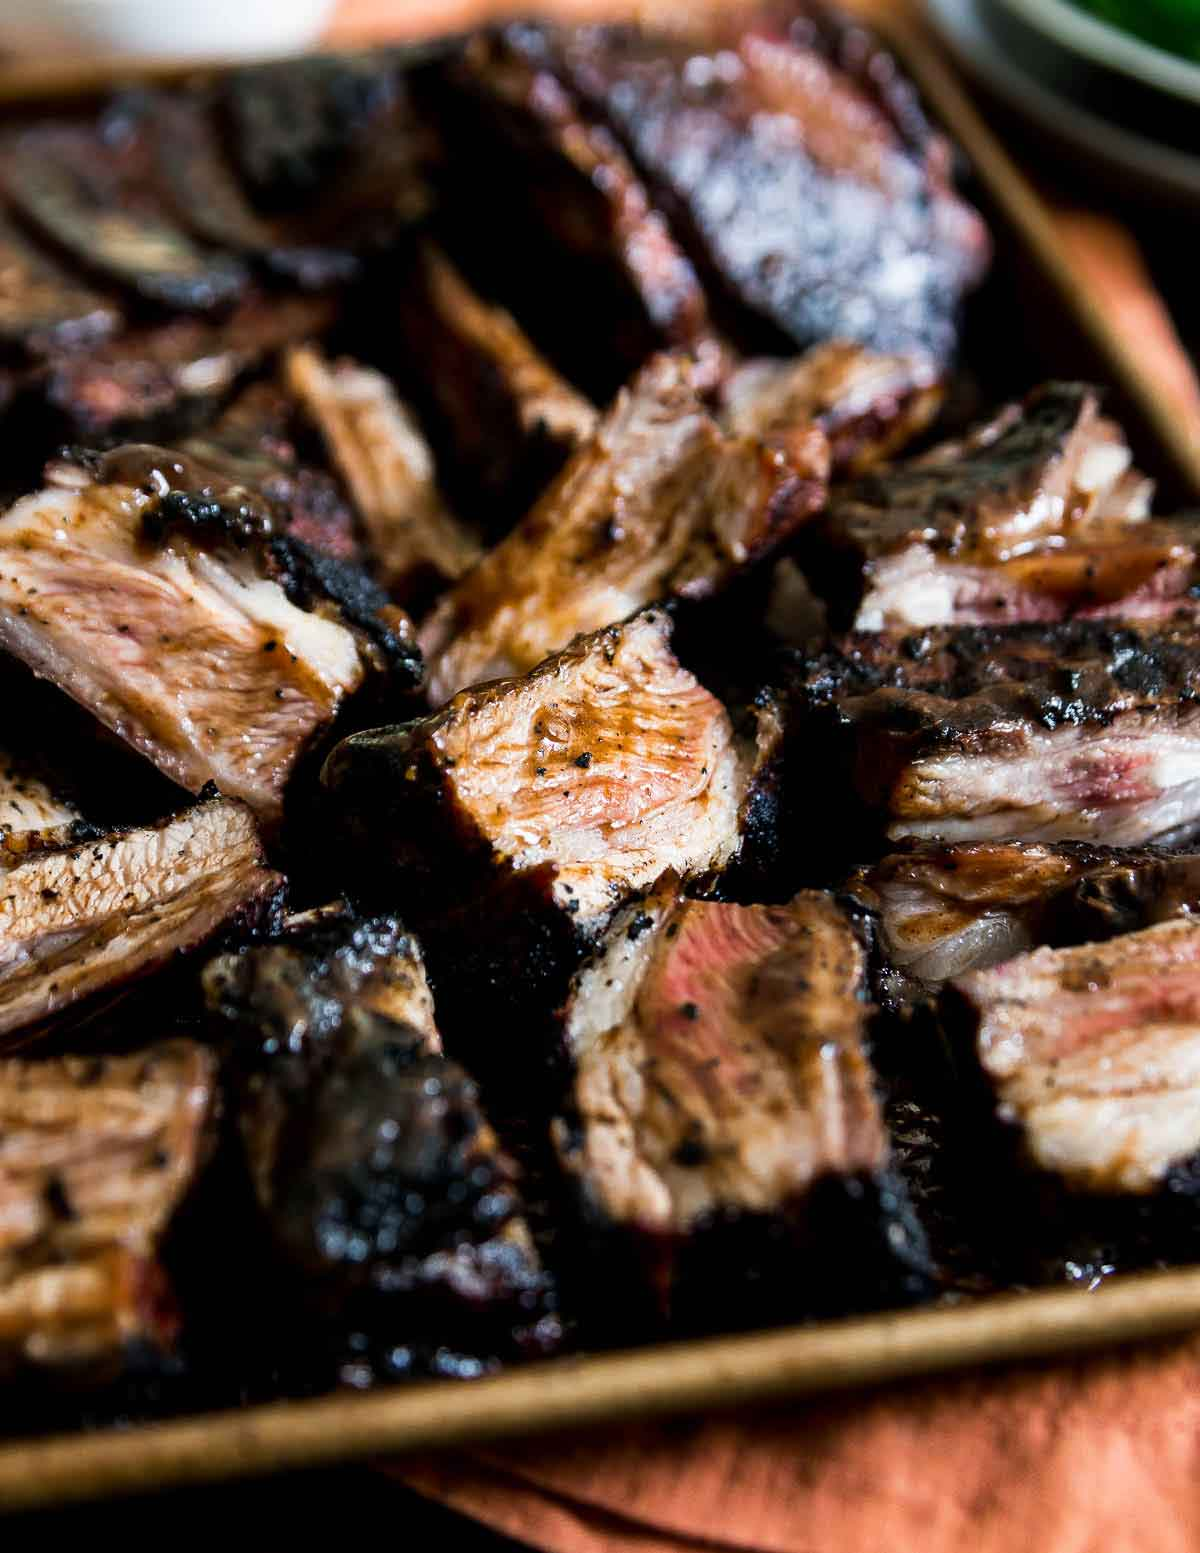 Grilled lamb ribs are packed full of BBQ flavor and the perfect summer recipe.